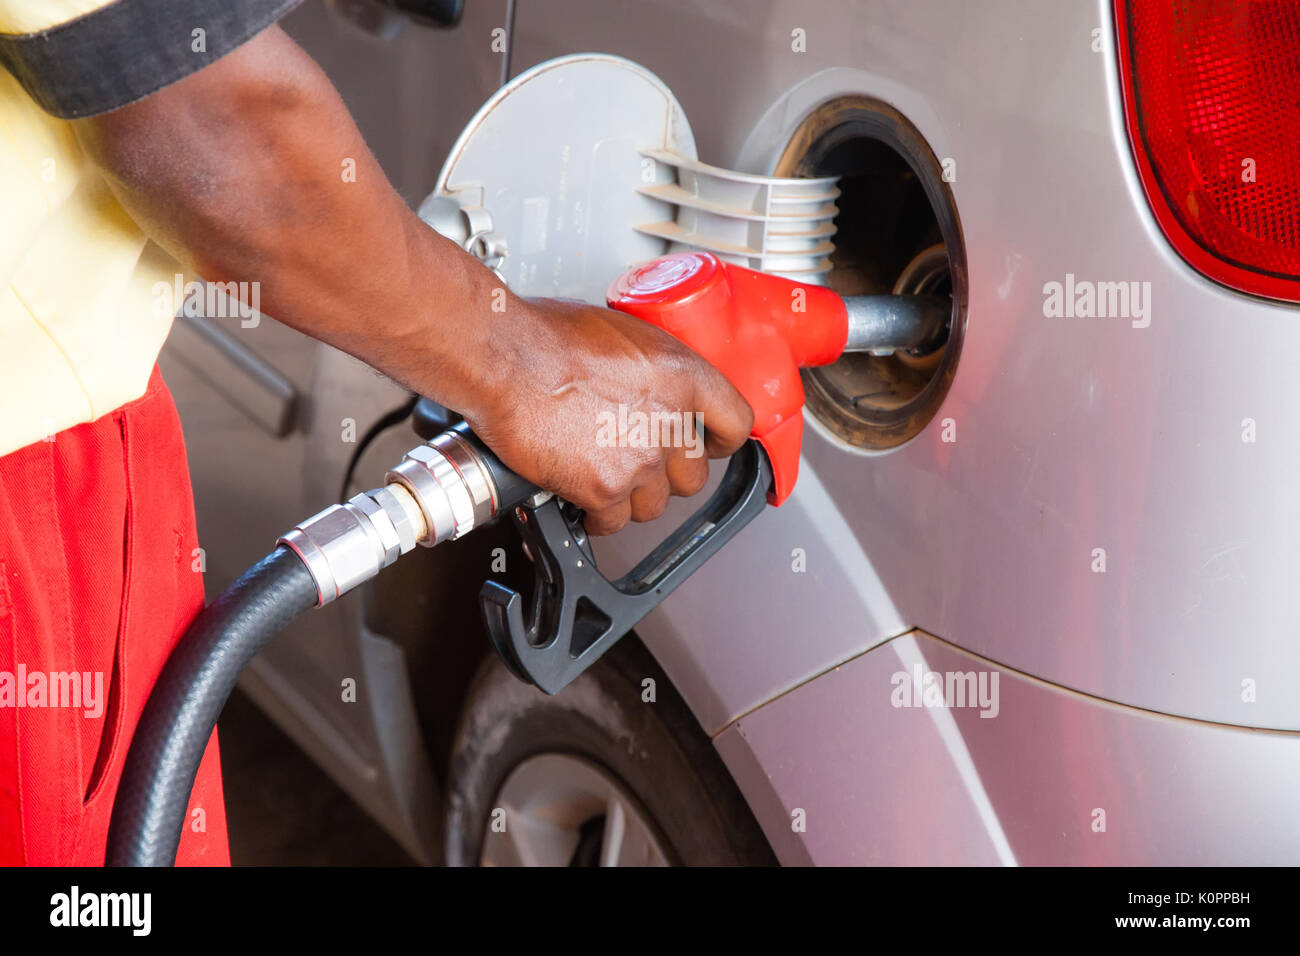 Car refueling at the petrol station. Image concept for use of fossil fuels (gasoline, diesel) in combustion engines - Stock Image